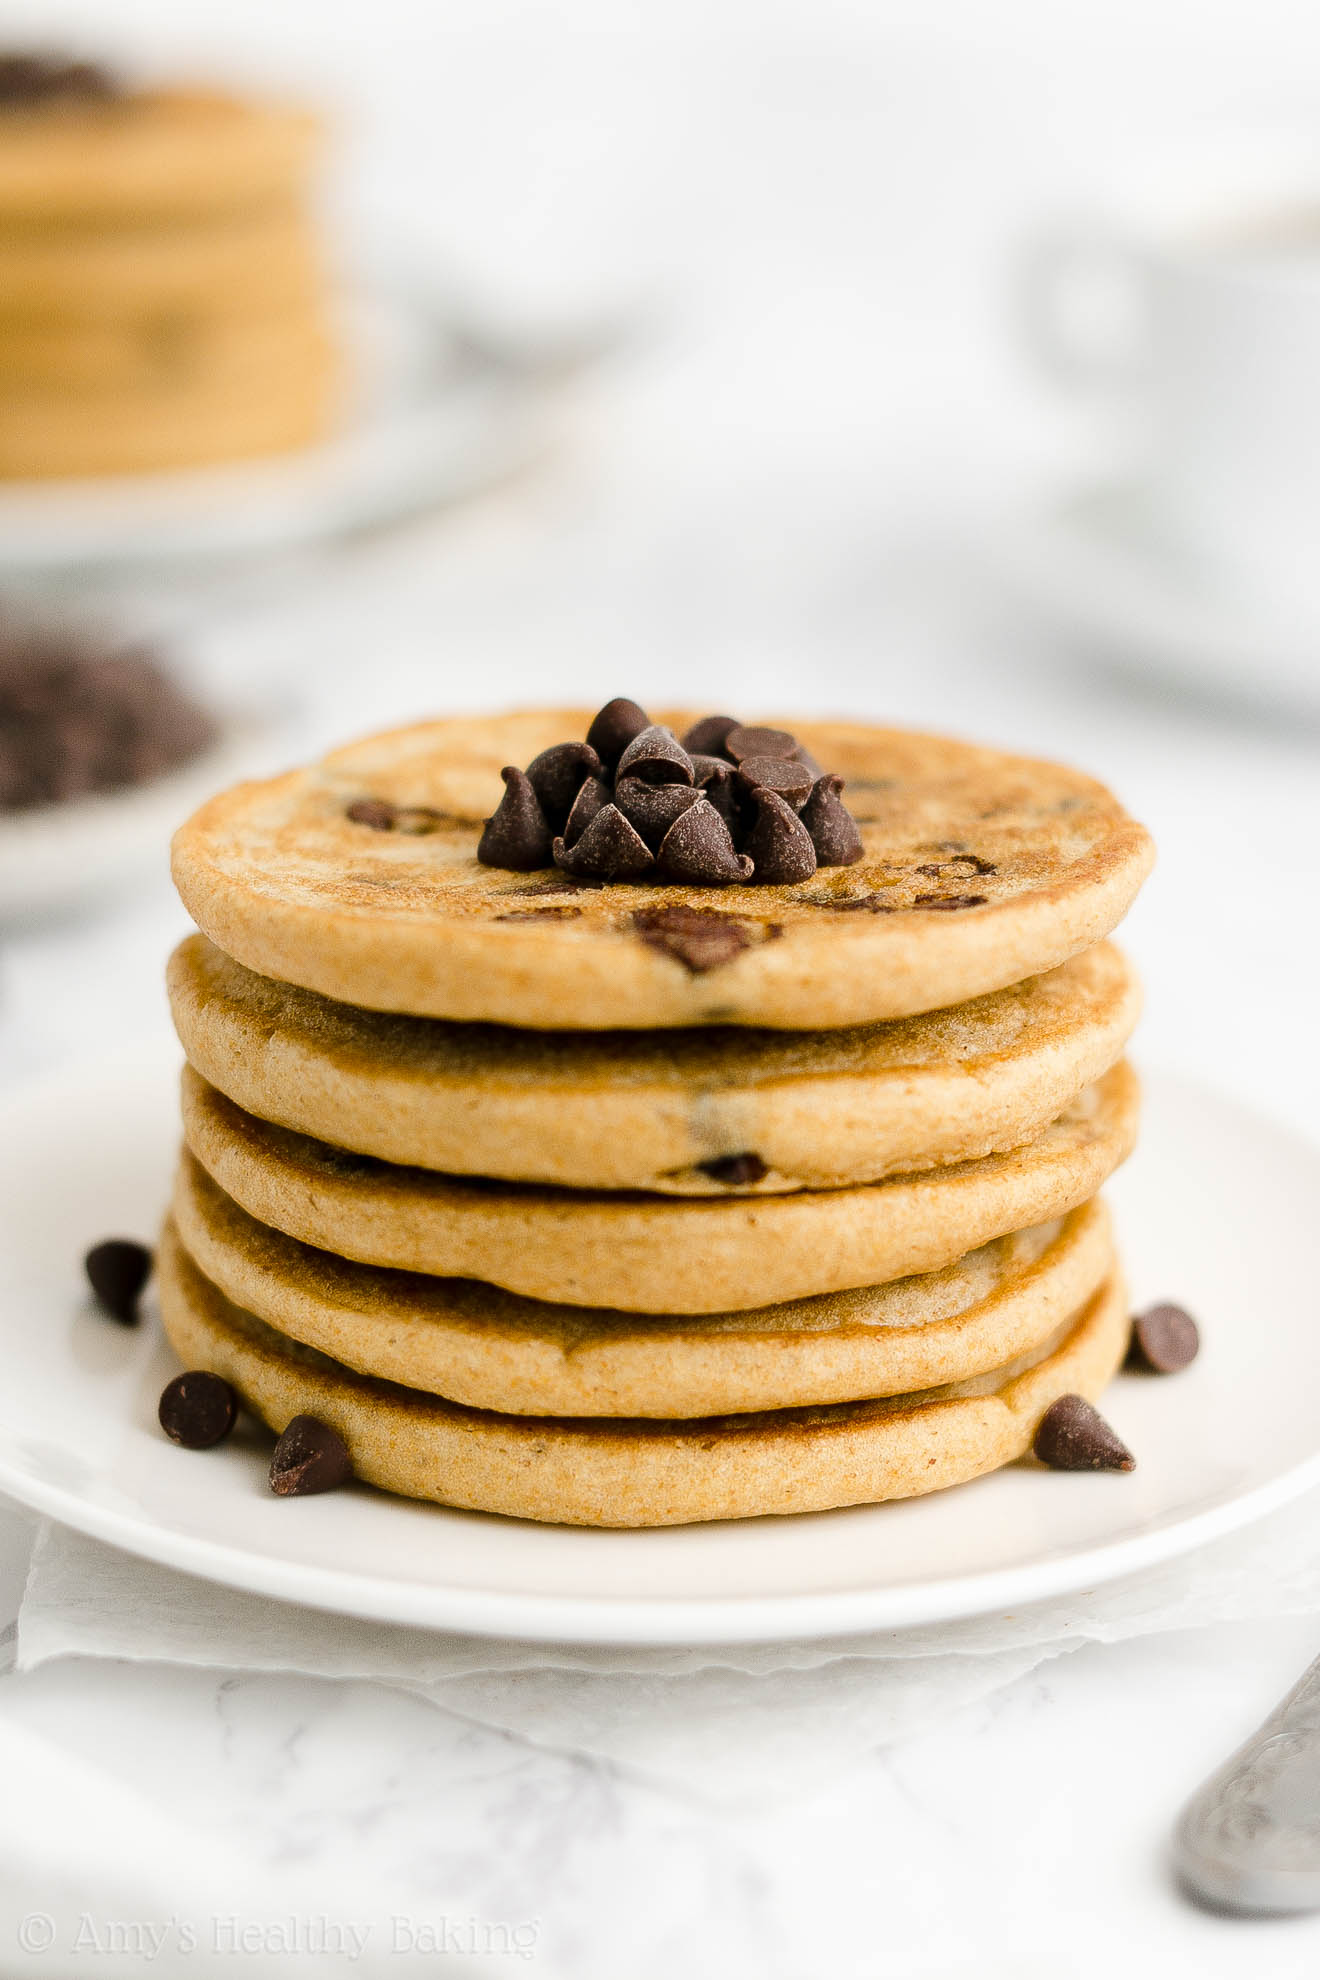 ULTIMATE Best Easy Healthy Gluten Free Vegan Fluffy Chocolate Chip Pancakes